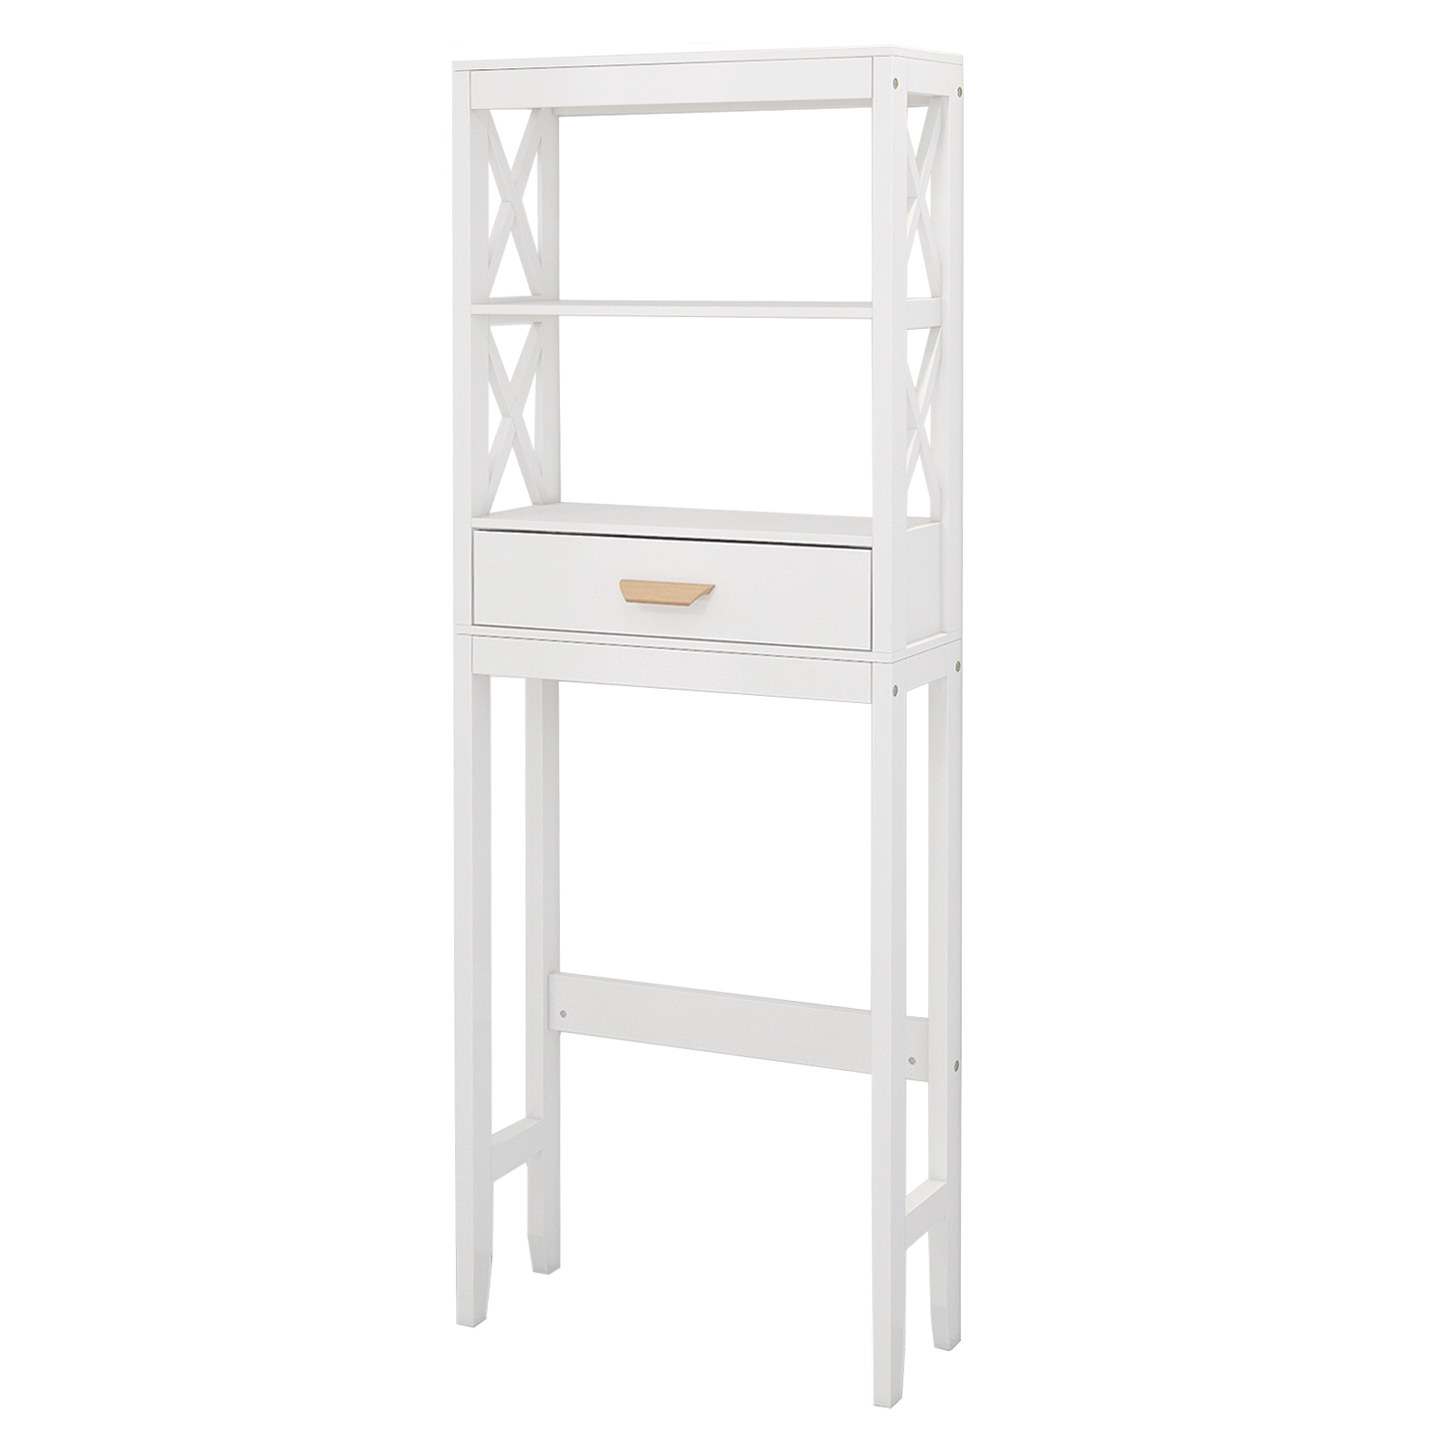 [US Direct] Over-the-Toilet Storage Cabinet White with one Drawer and 2 Shelves Space Saver Bathroom Rack